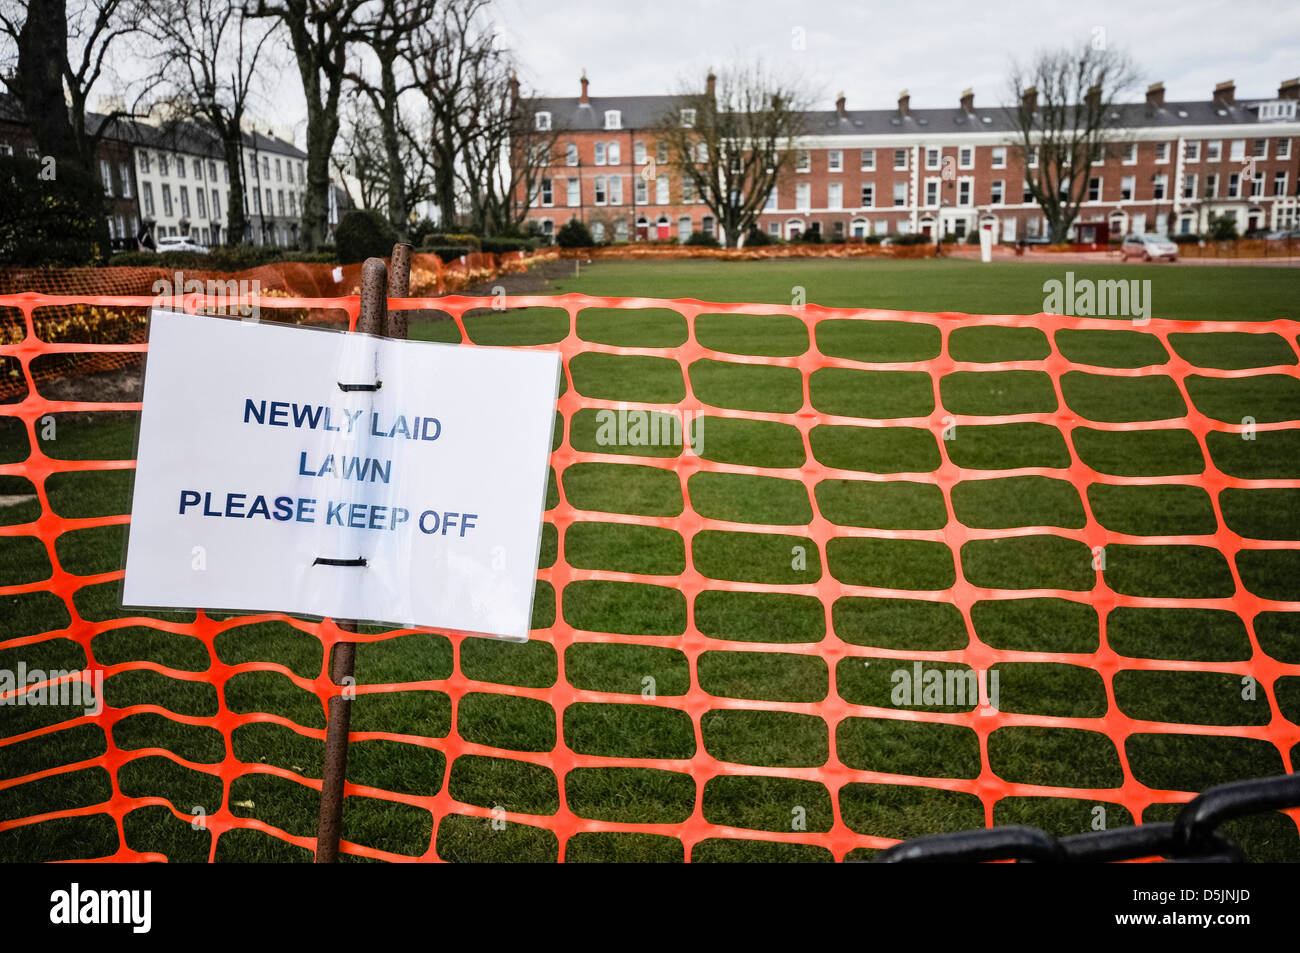 Sign on a newly laid lawn asking people to keep off. Stock Photo